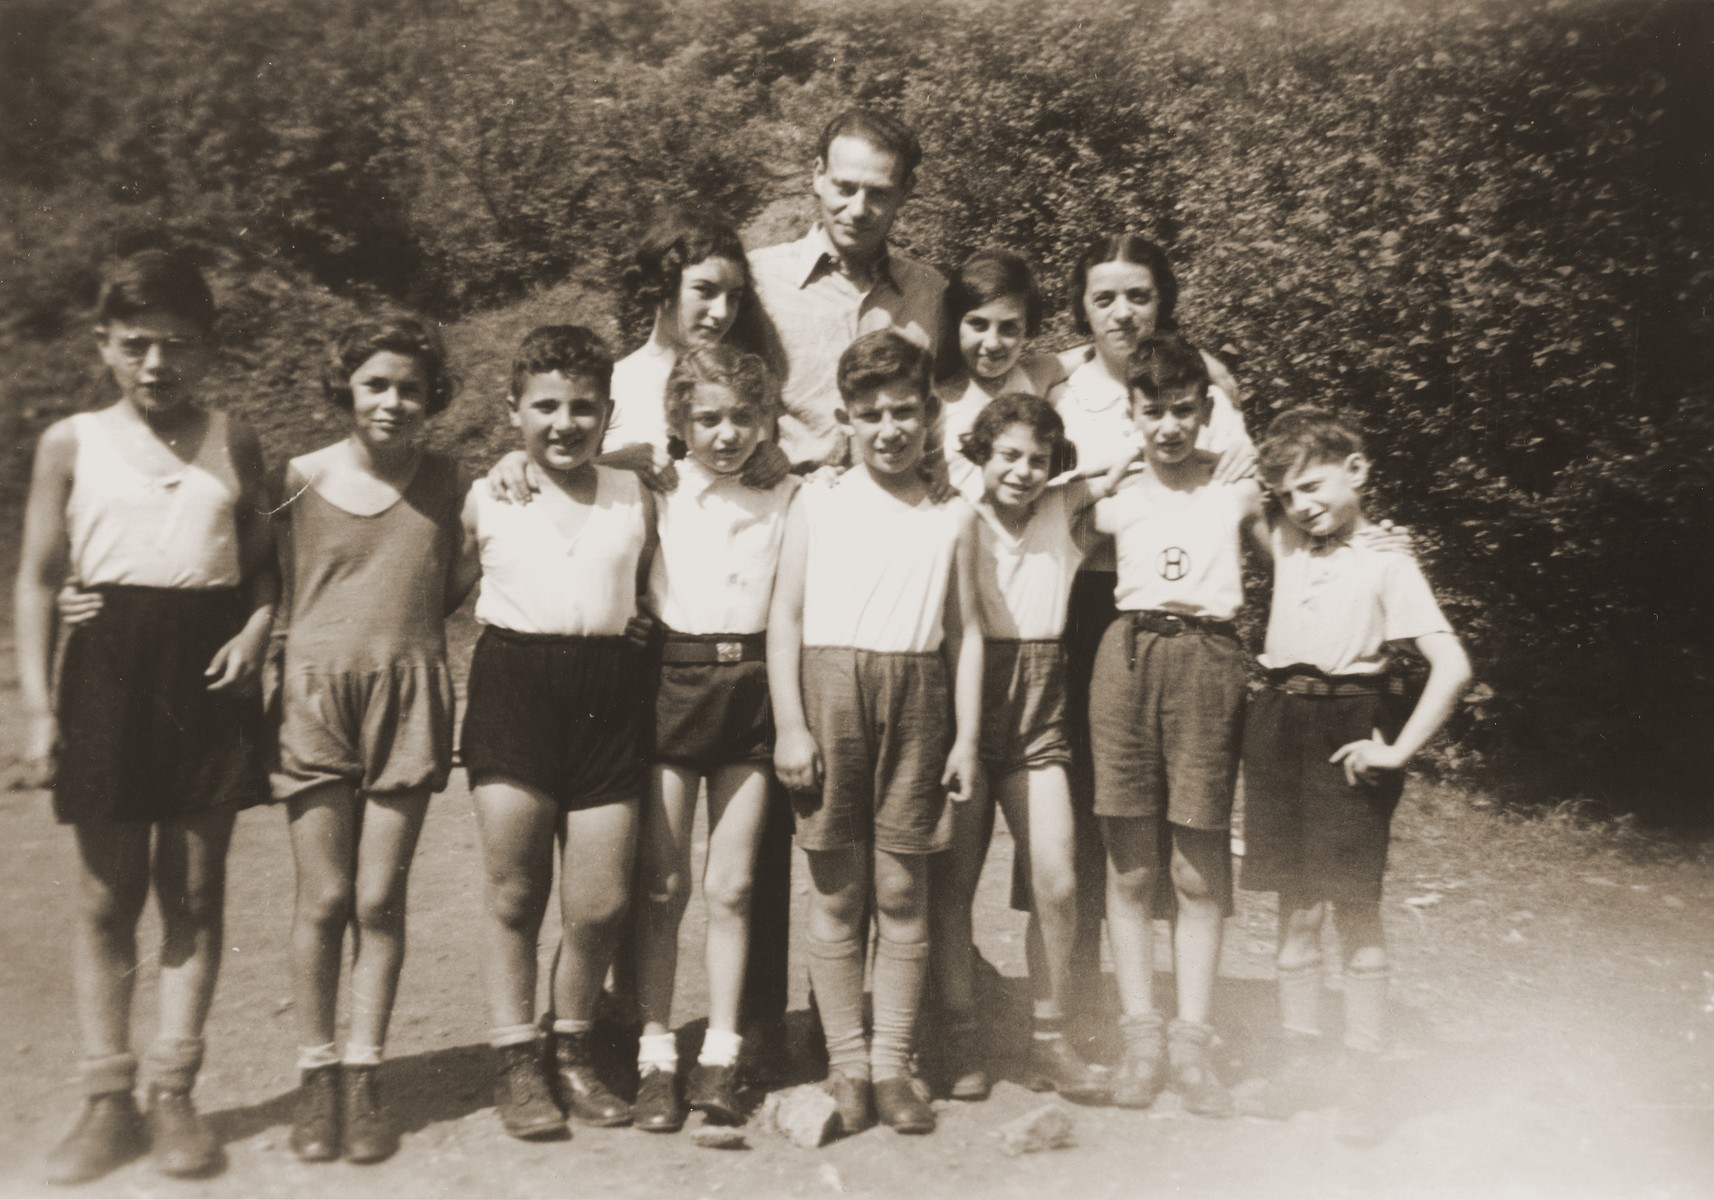 Group portrait of Jewish children who are members of the Hakoach sports club in Essen.    Among those pictured is Heinz Straus (front row, second from the right).